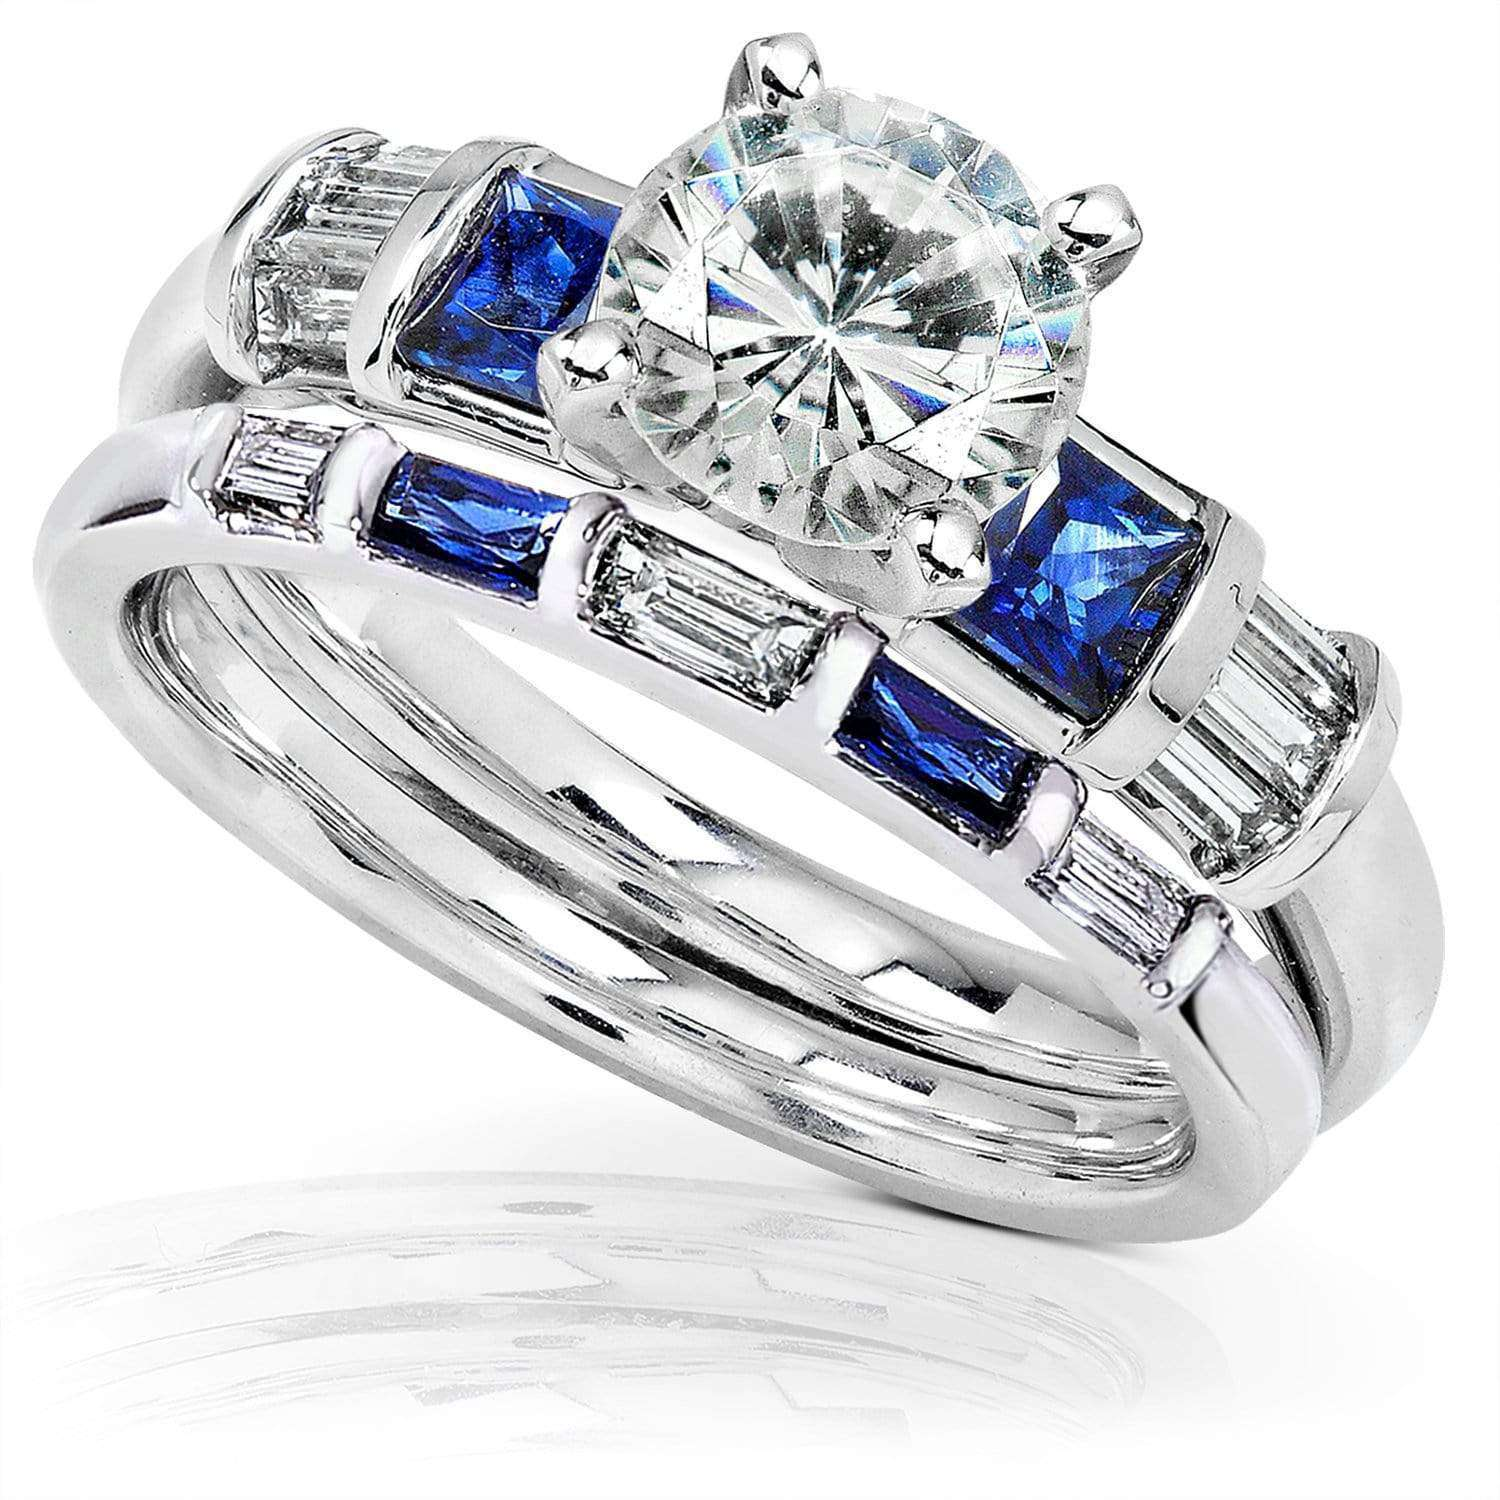 Top Round Moissanite Bridal Set with Sapphire and Diamond 2 1/4 CTW 14k White Gold - 6.5